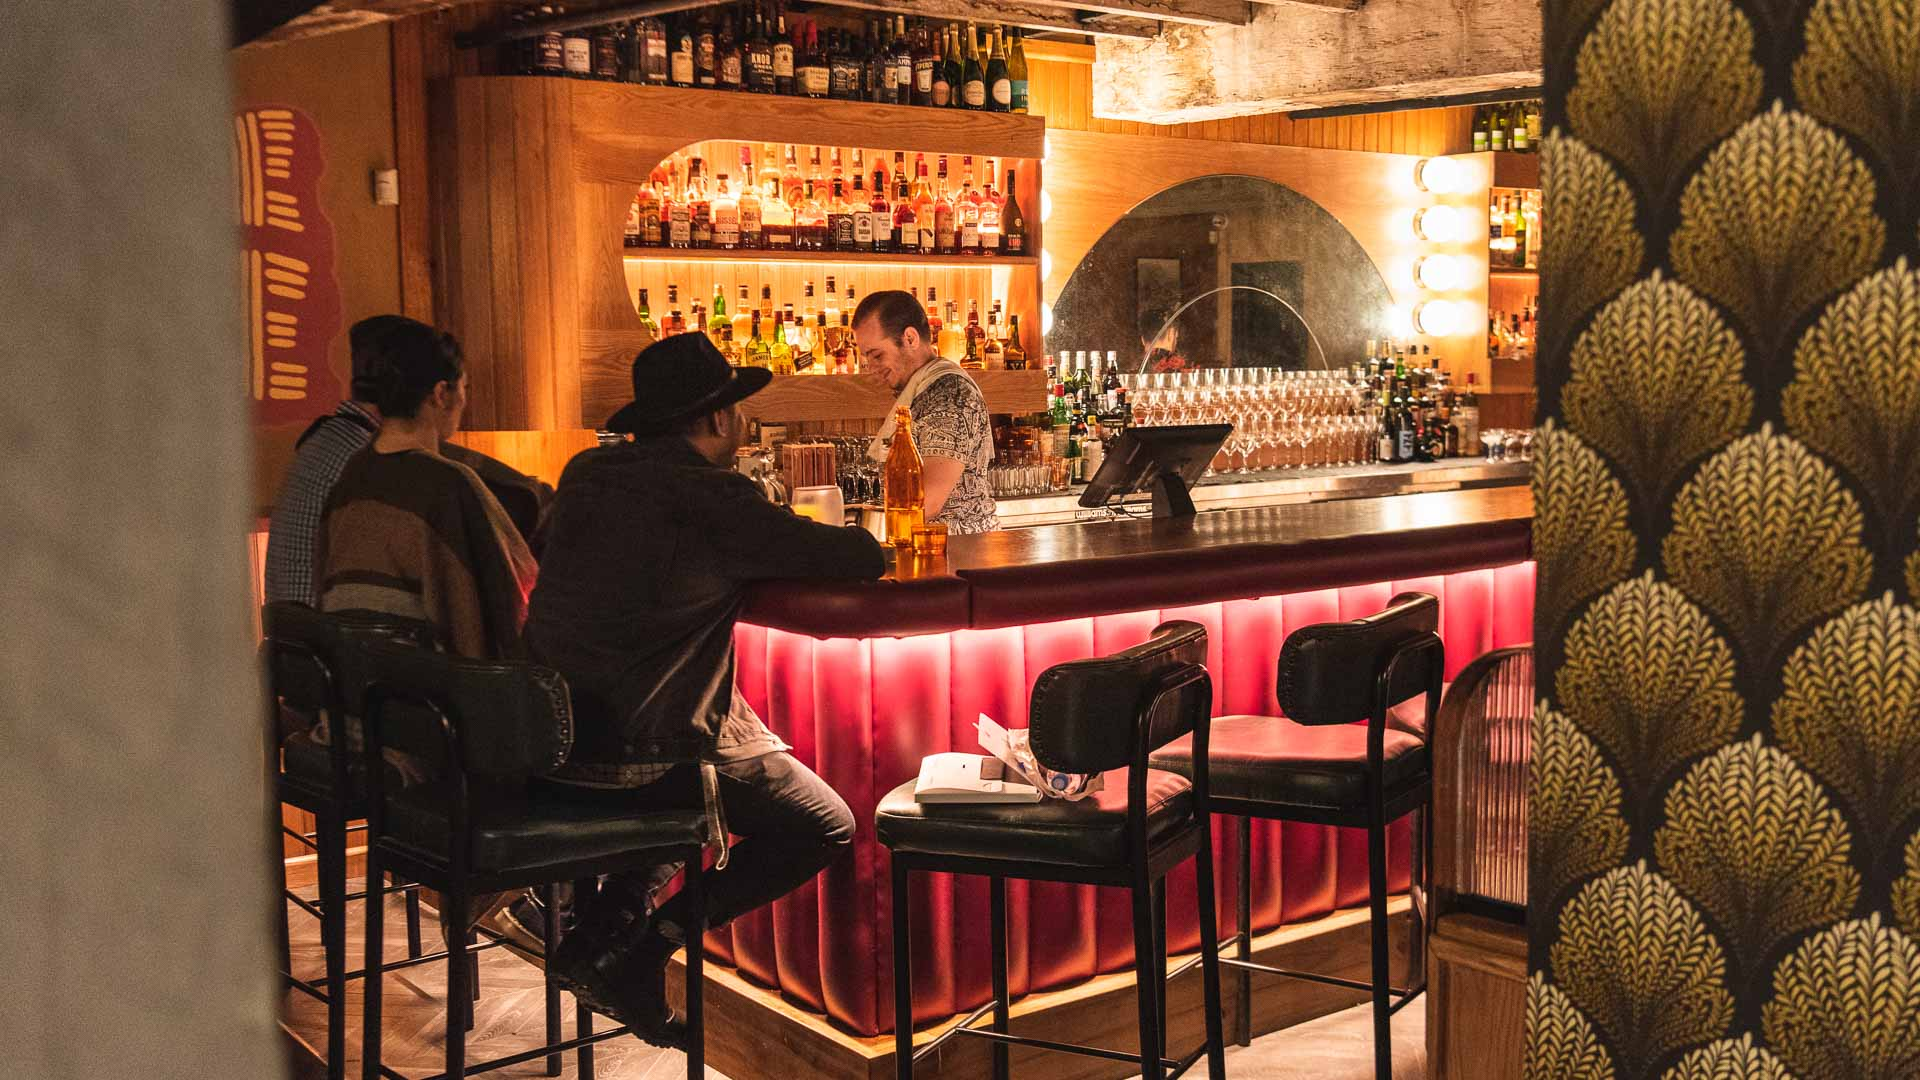 Double Deuce Lounge Is the New '70s Porn Chic' Underground Bar by the Ramblin' Rascal Crew